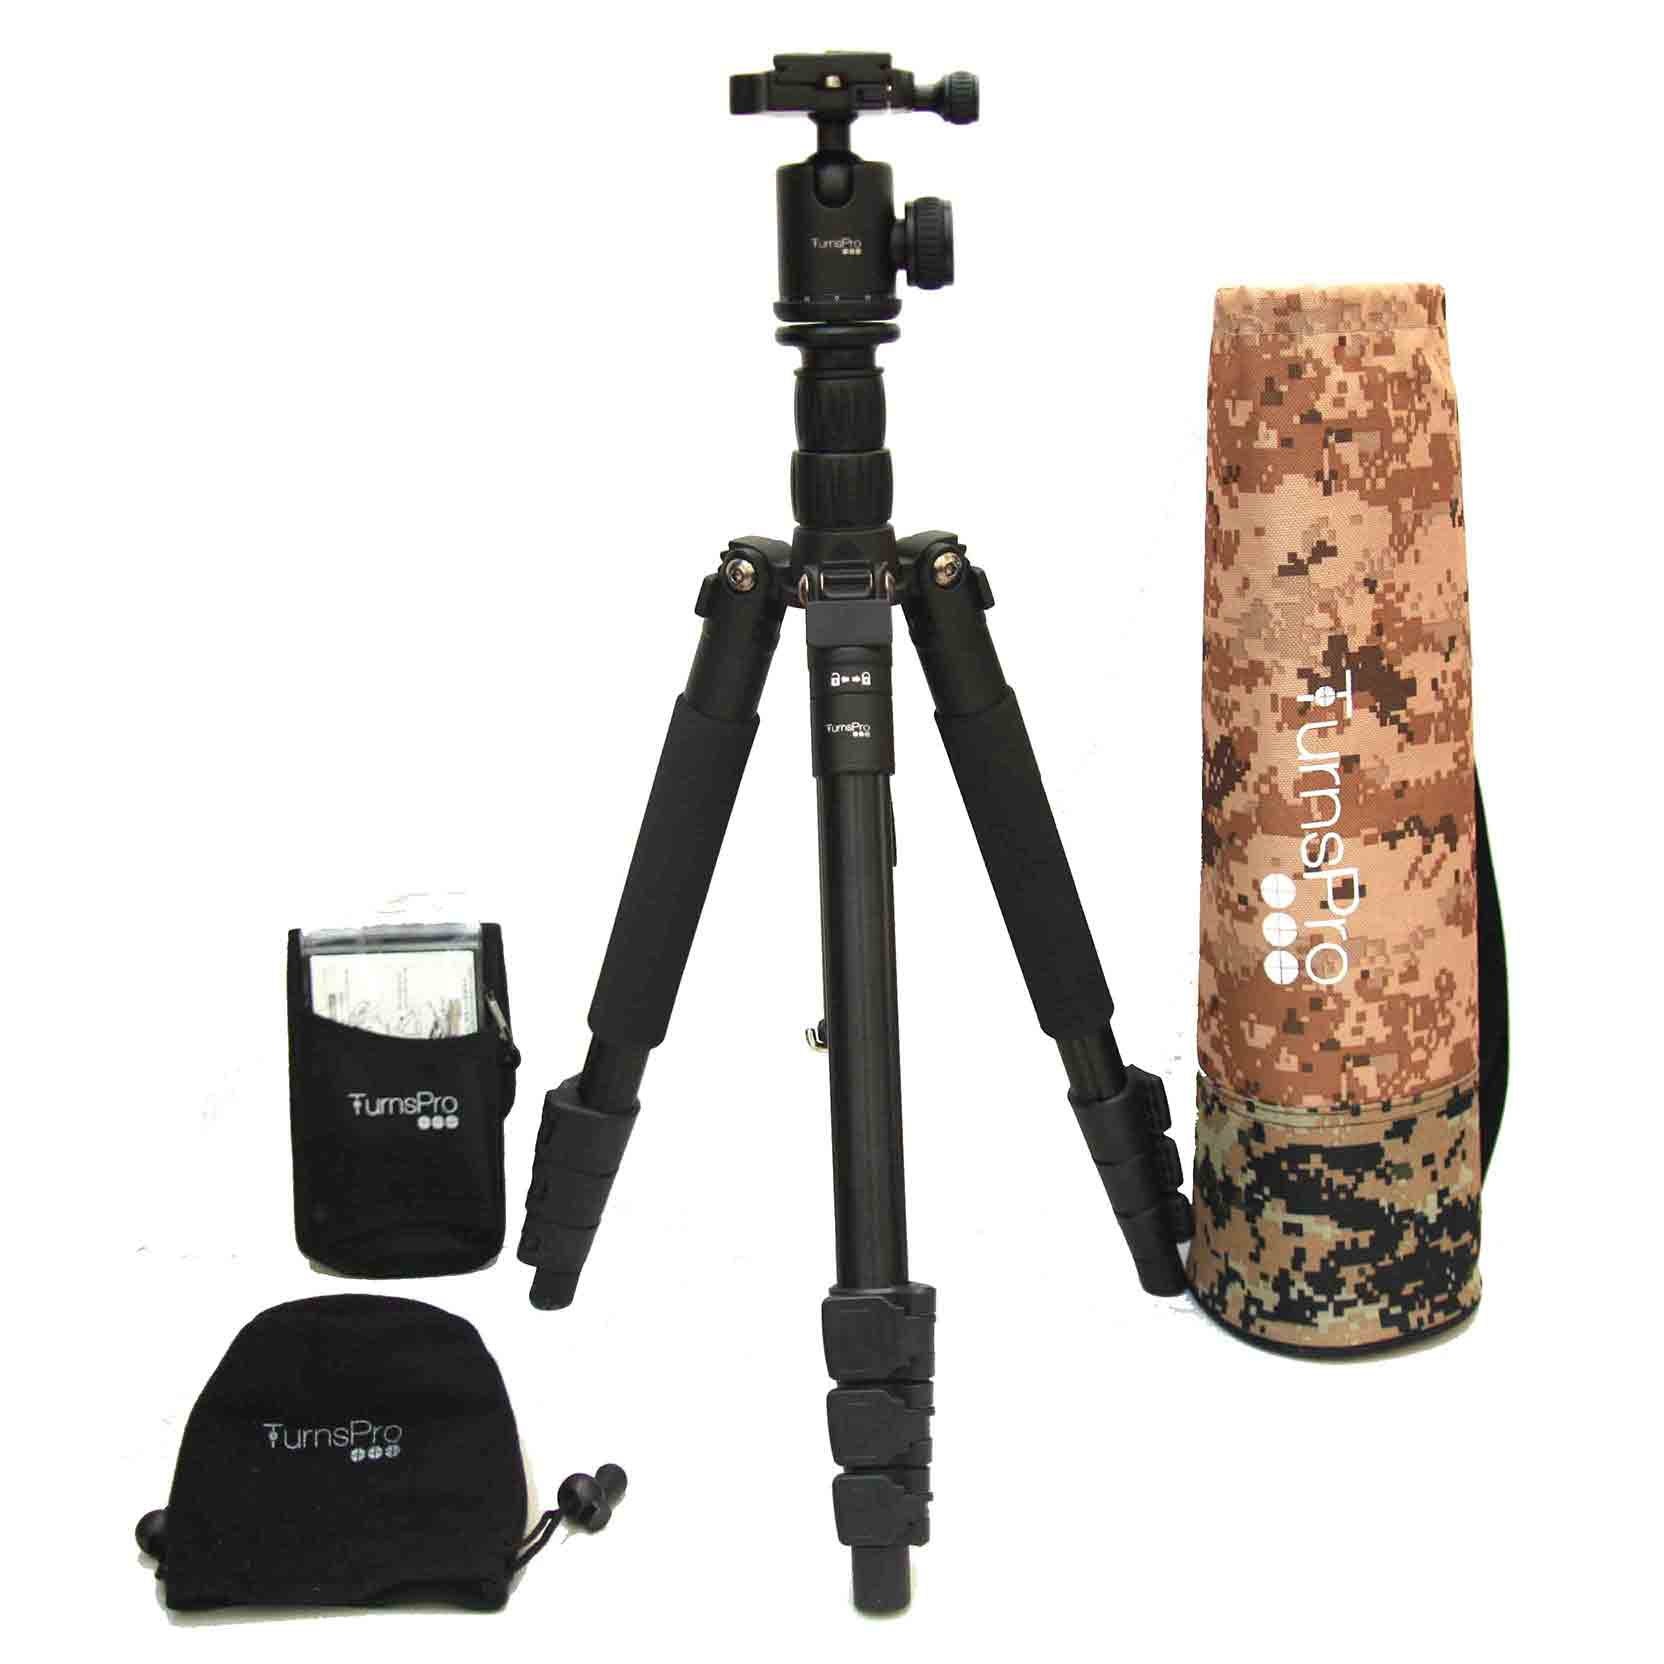 TurnsPro tripod and ball head